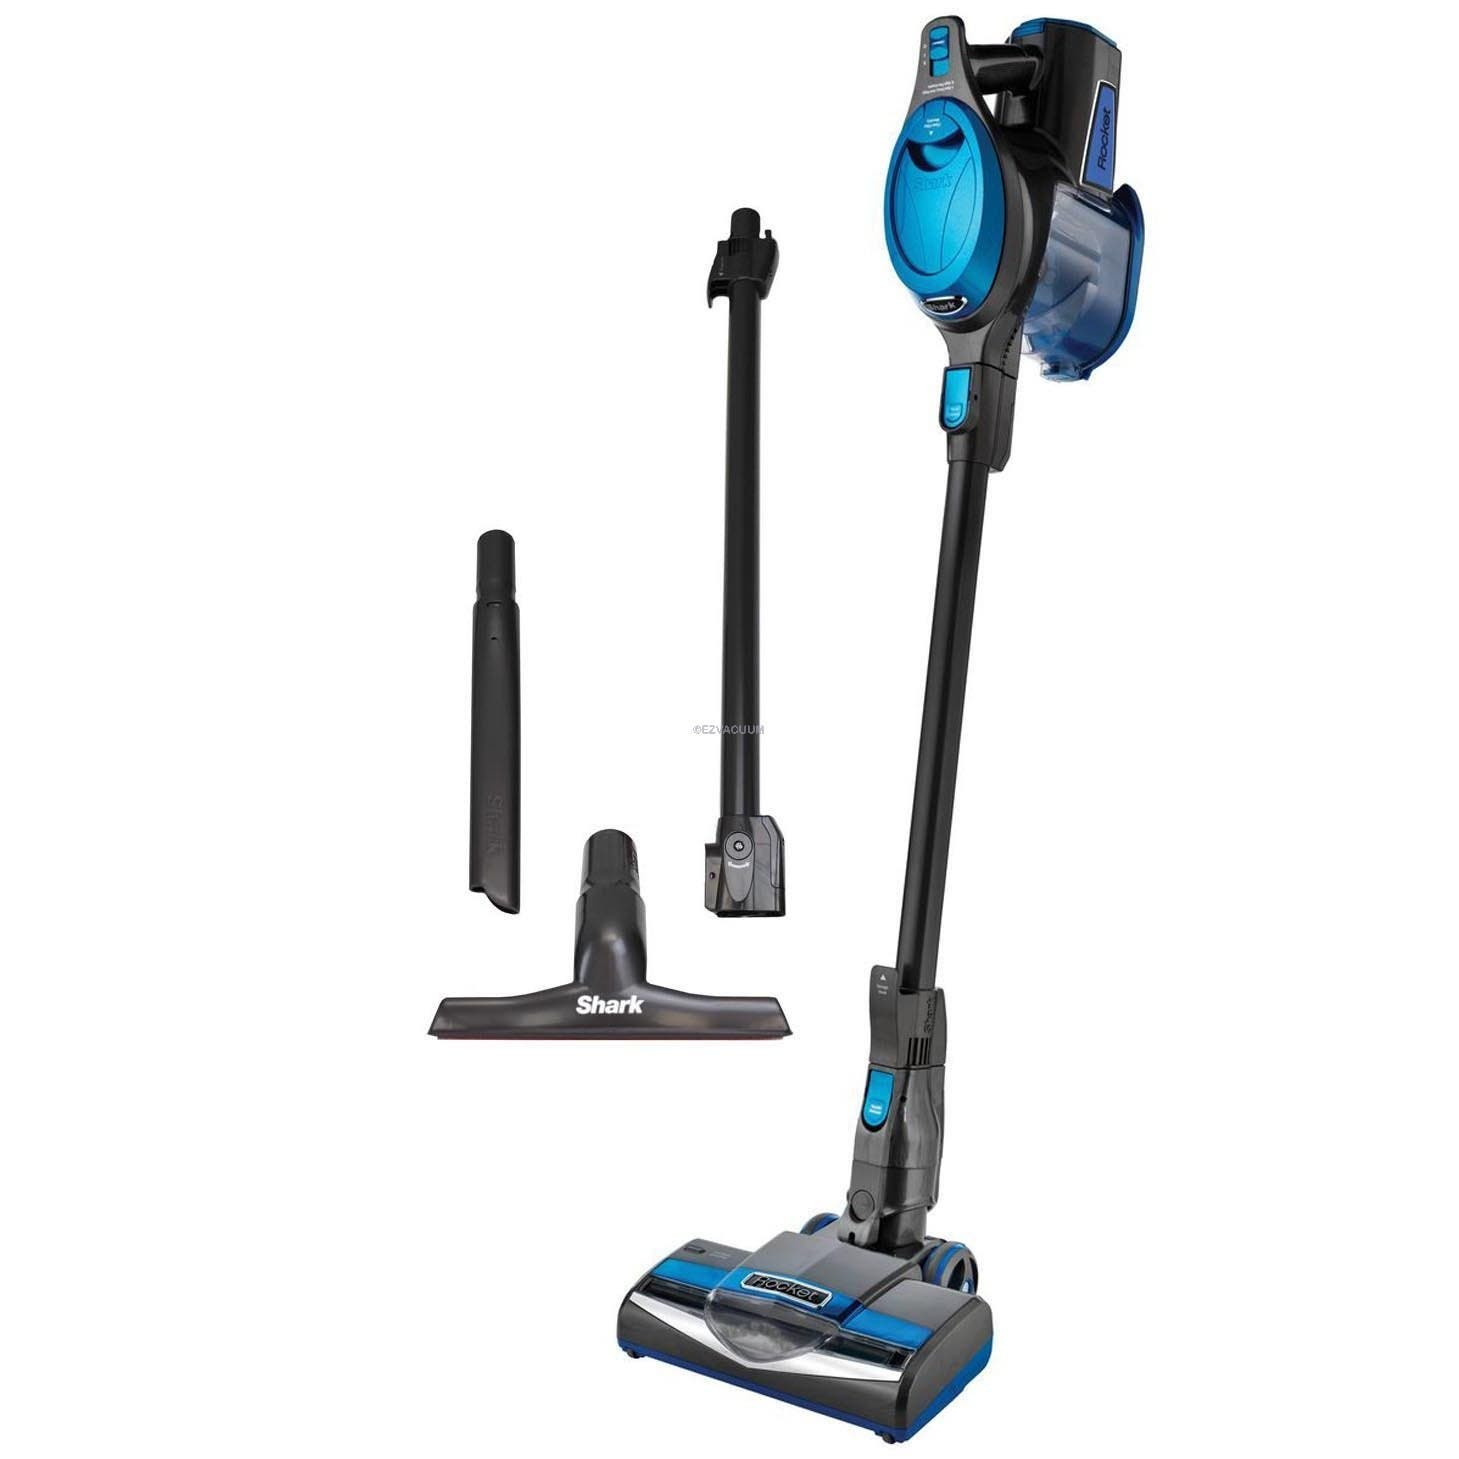 cleaner purples light lavenders ultra vacuum p rocket upright lighting vacuums deluxepro shark